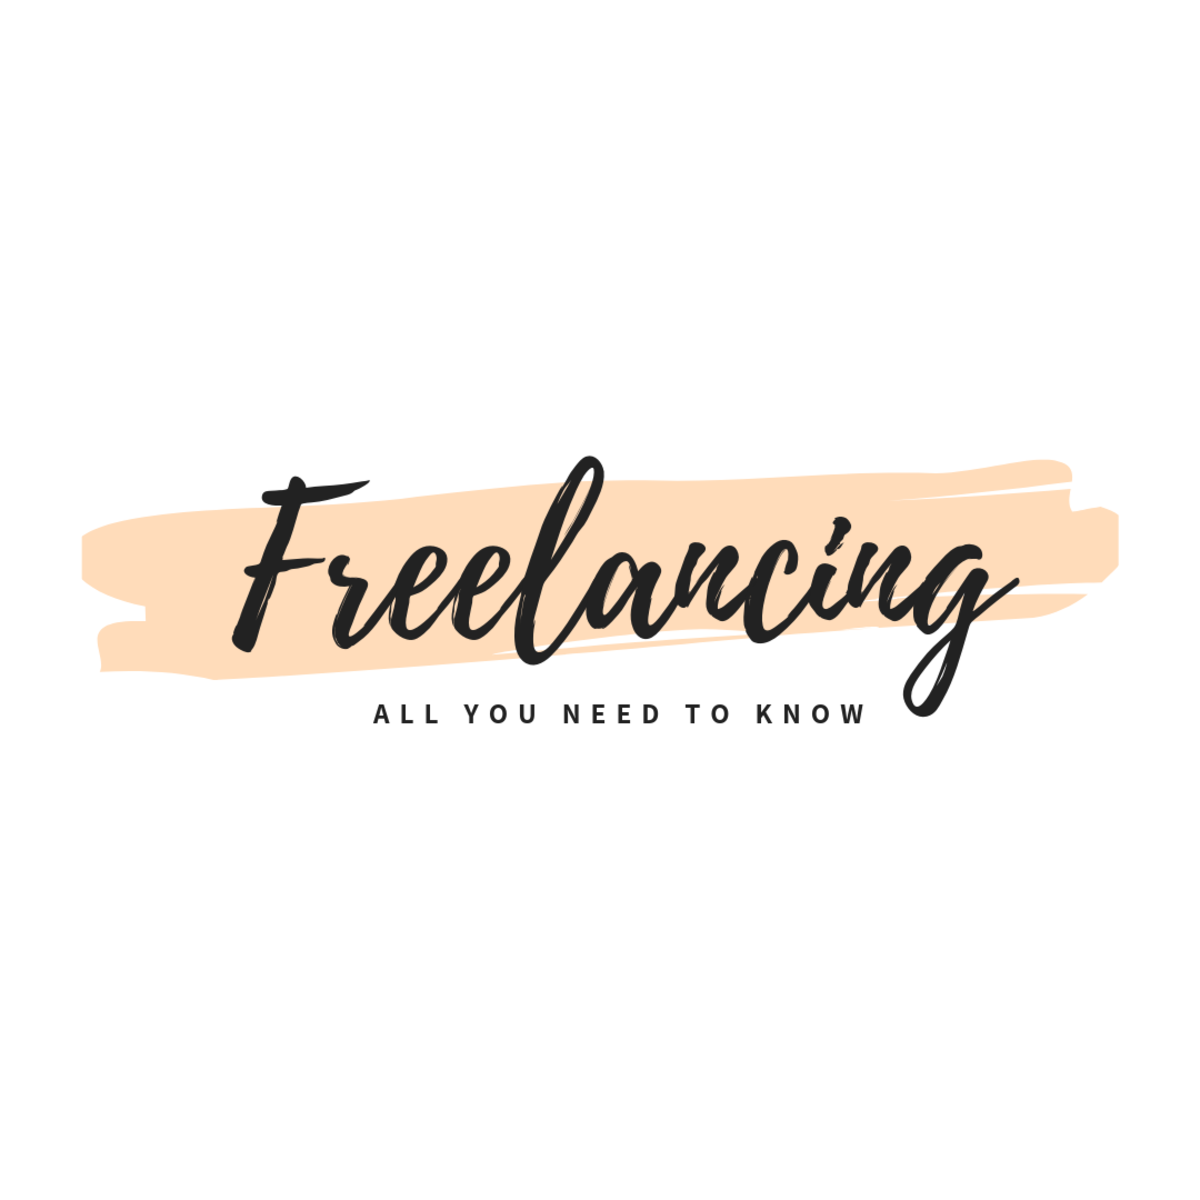 What Is Freelancing? All You Need to Know to Get Started.